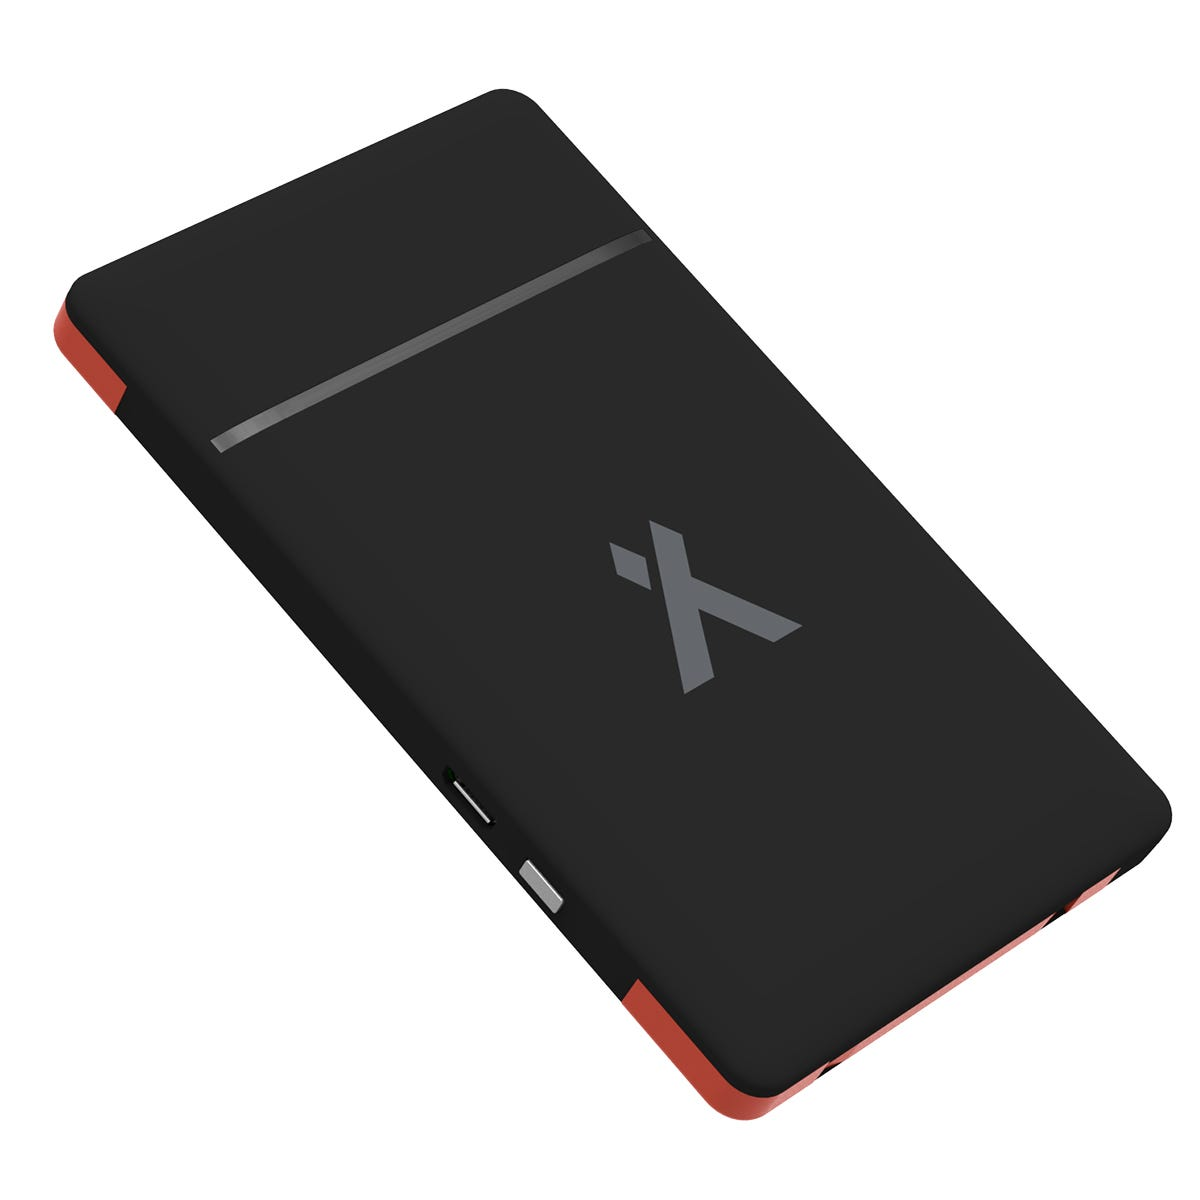 Image of Bear Grylls 3000mAh Power Bank + Built-in Lightning/MicroUSB Cable